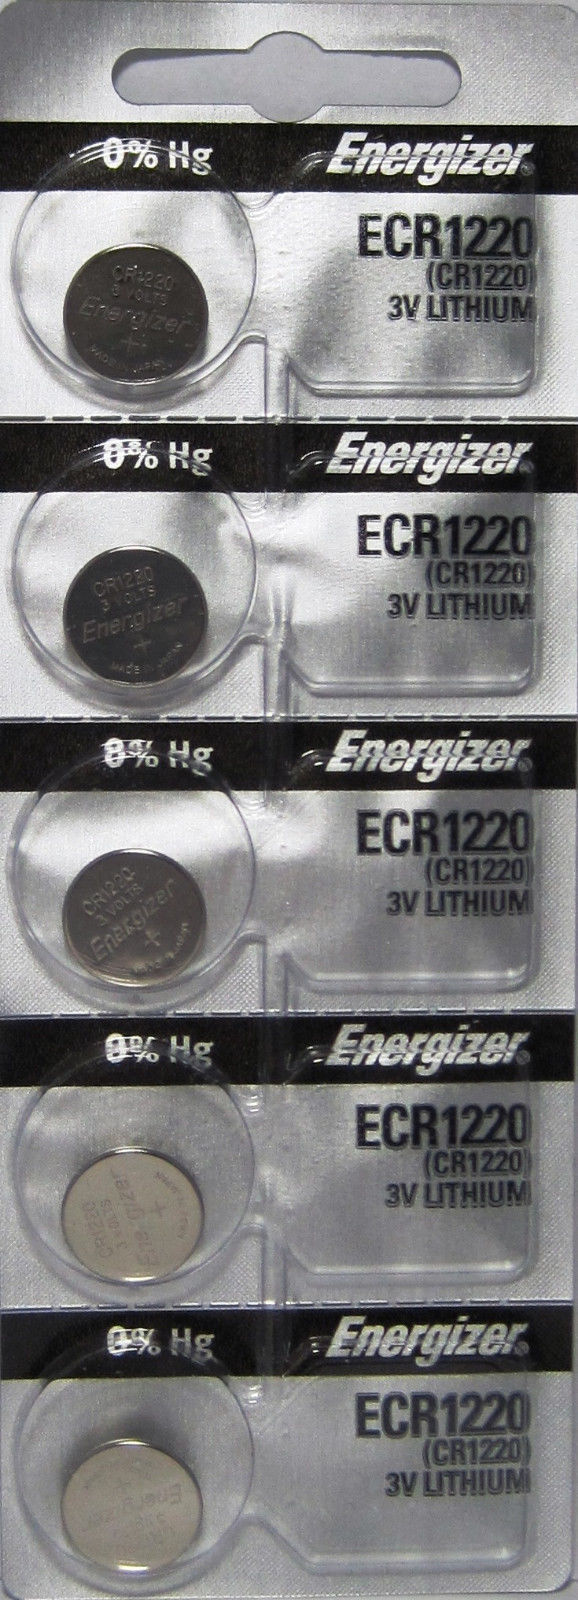 5 x Fresh ENERGIZER CR1220 BATTERY 3V LITHIUM CR 1220 DL1220 BR1220 EXP 2024 Consumer Electronics